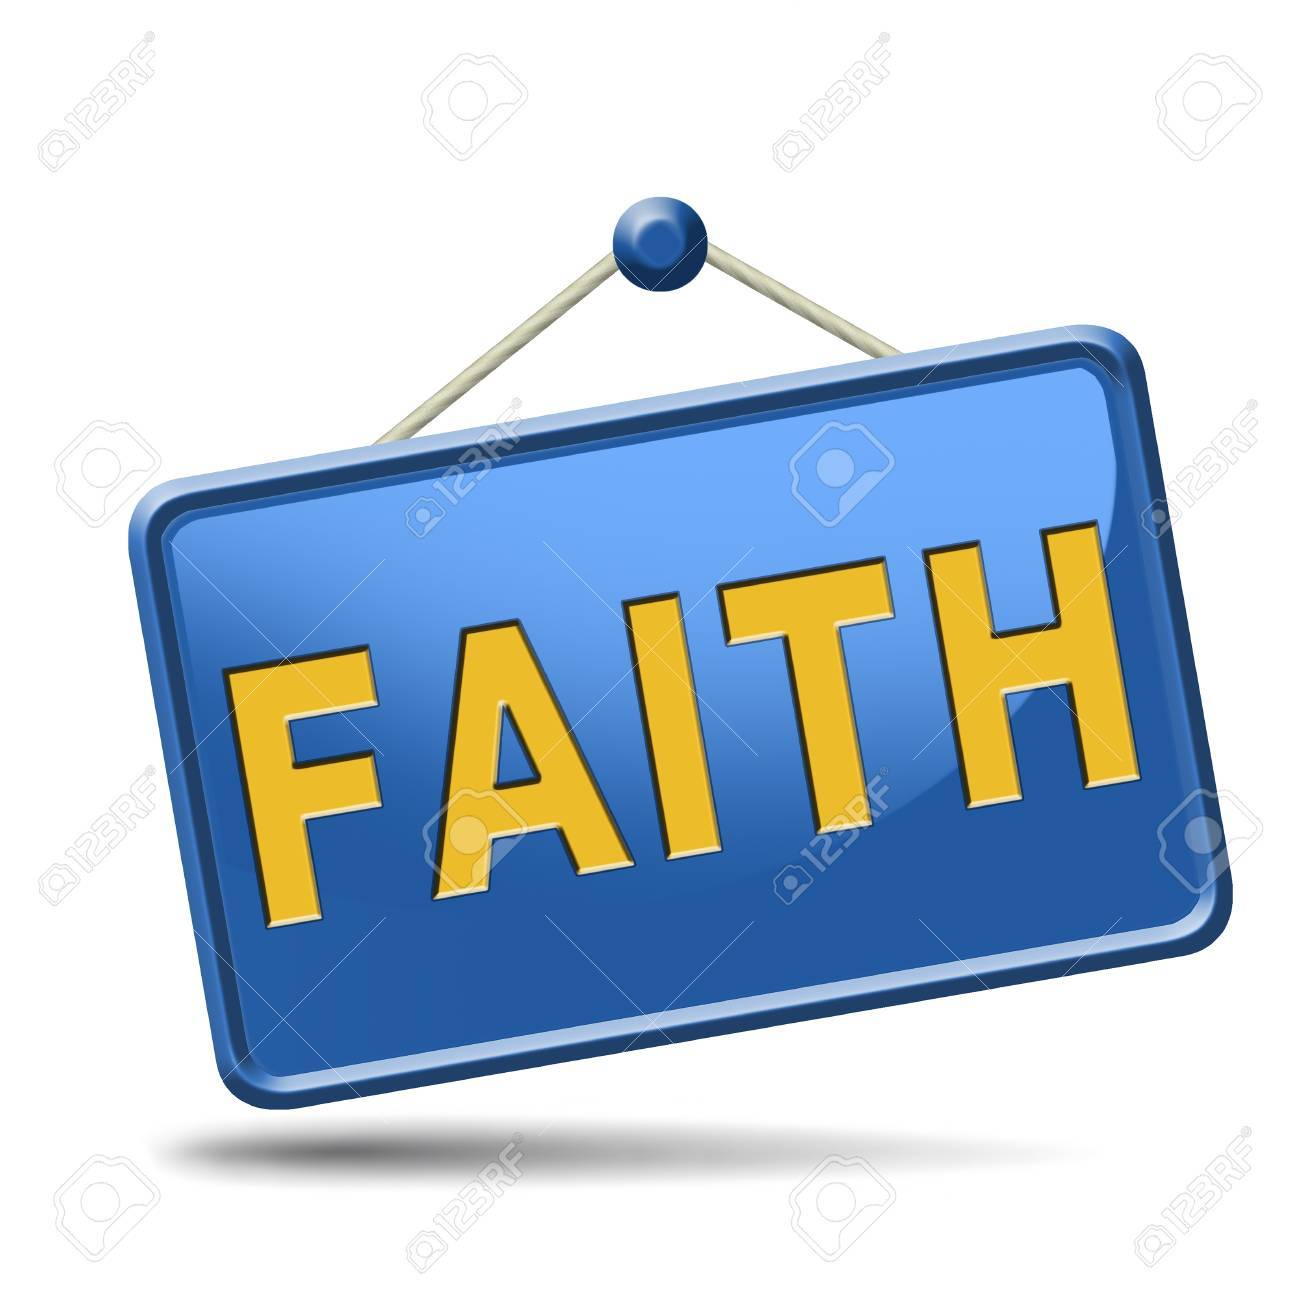 faith trust and belief in god jesus christ and friends Stock Photo - 23101160